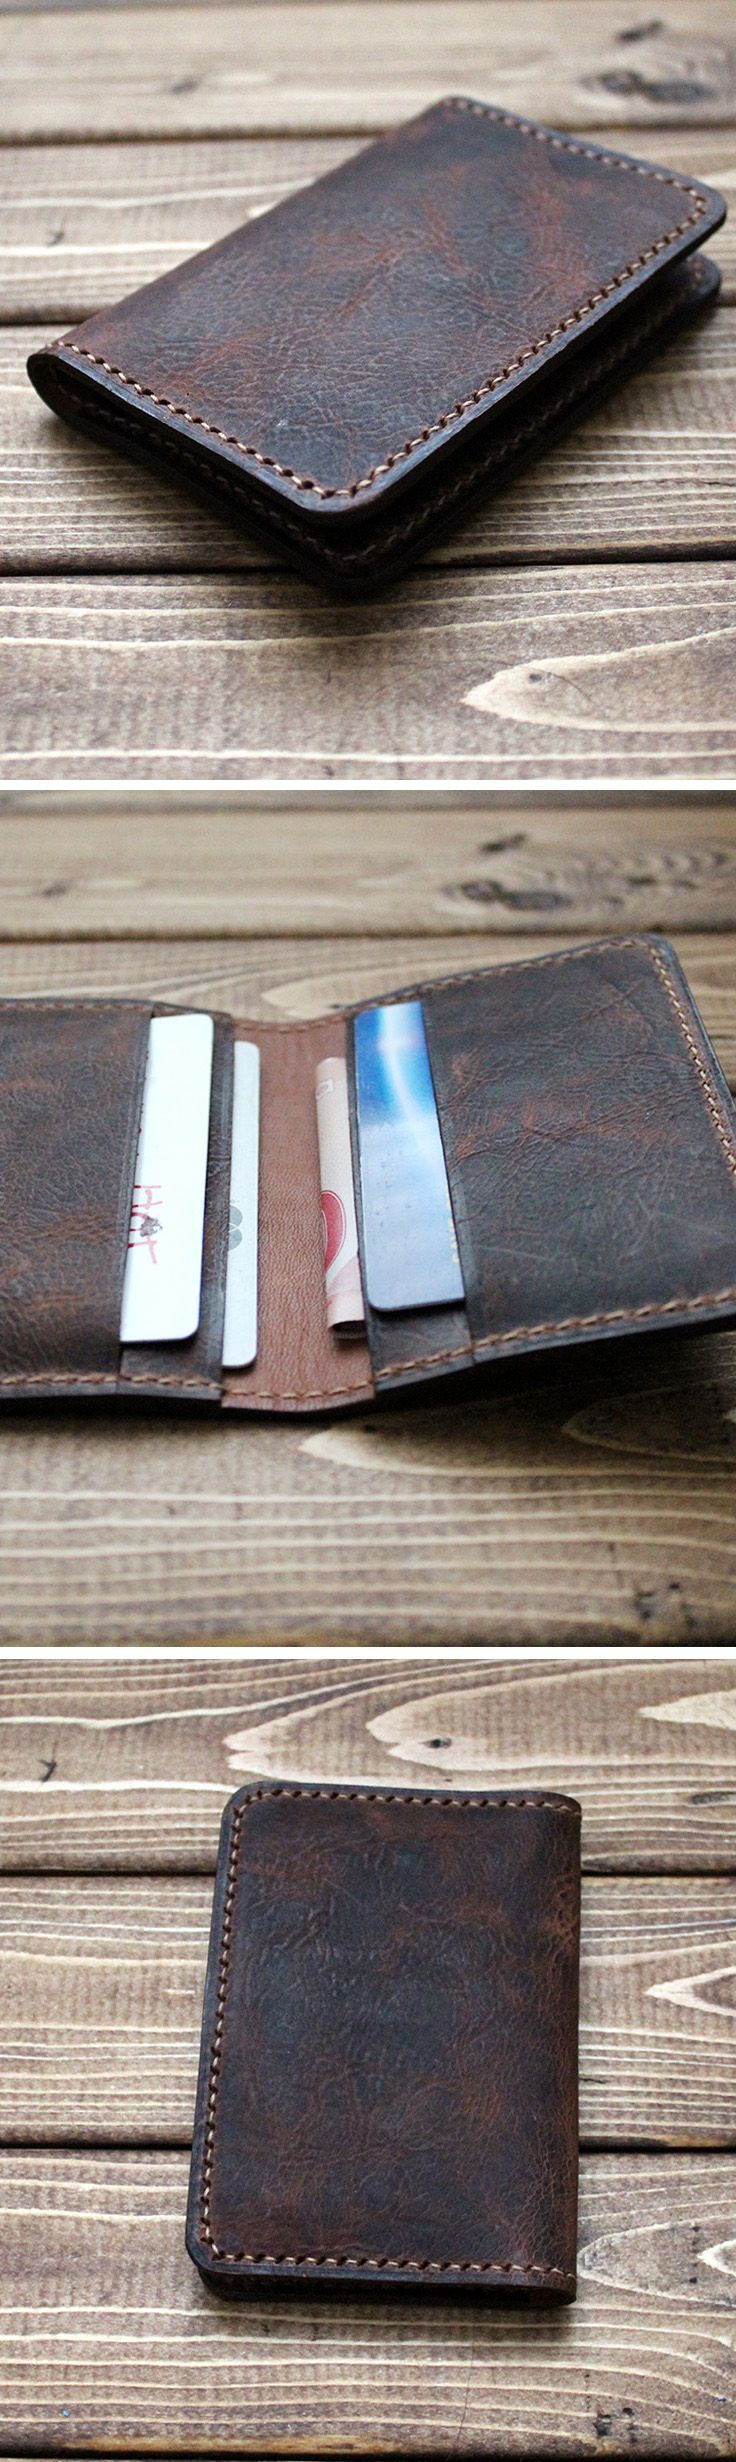 Vintage Washing Italian Genuine Leather Slim Wallet in DARK BROWN ESPRESSO Minimalist Perfect wallet! Hand stitched wallet will last a life time. men's best gift! Great for groomsmen gift, wedding, graduation, birthday, holiday, Christmas, anniversary gif